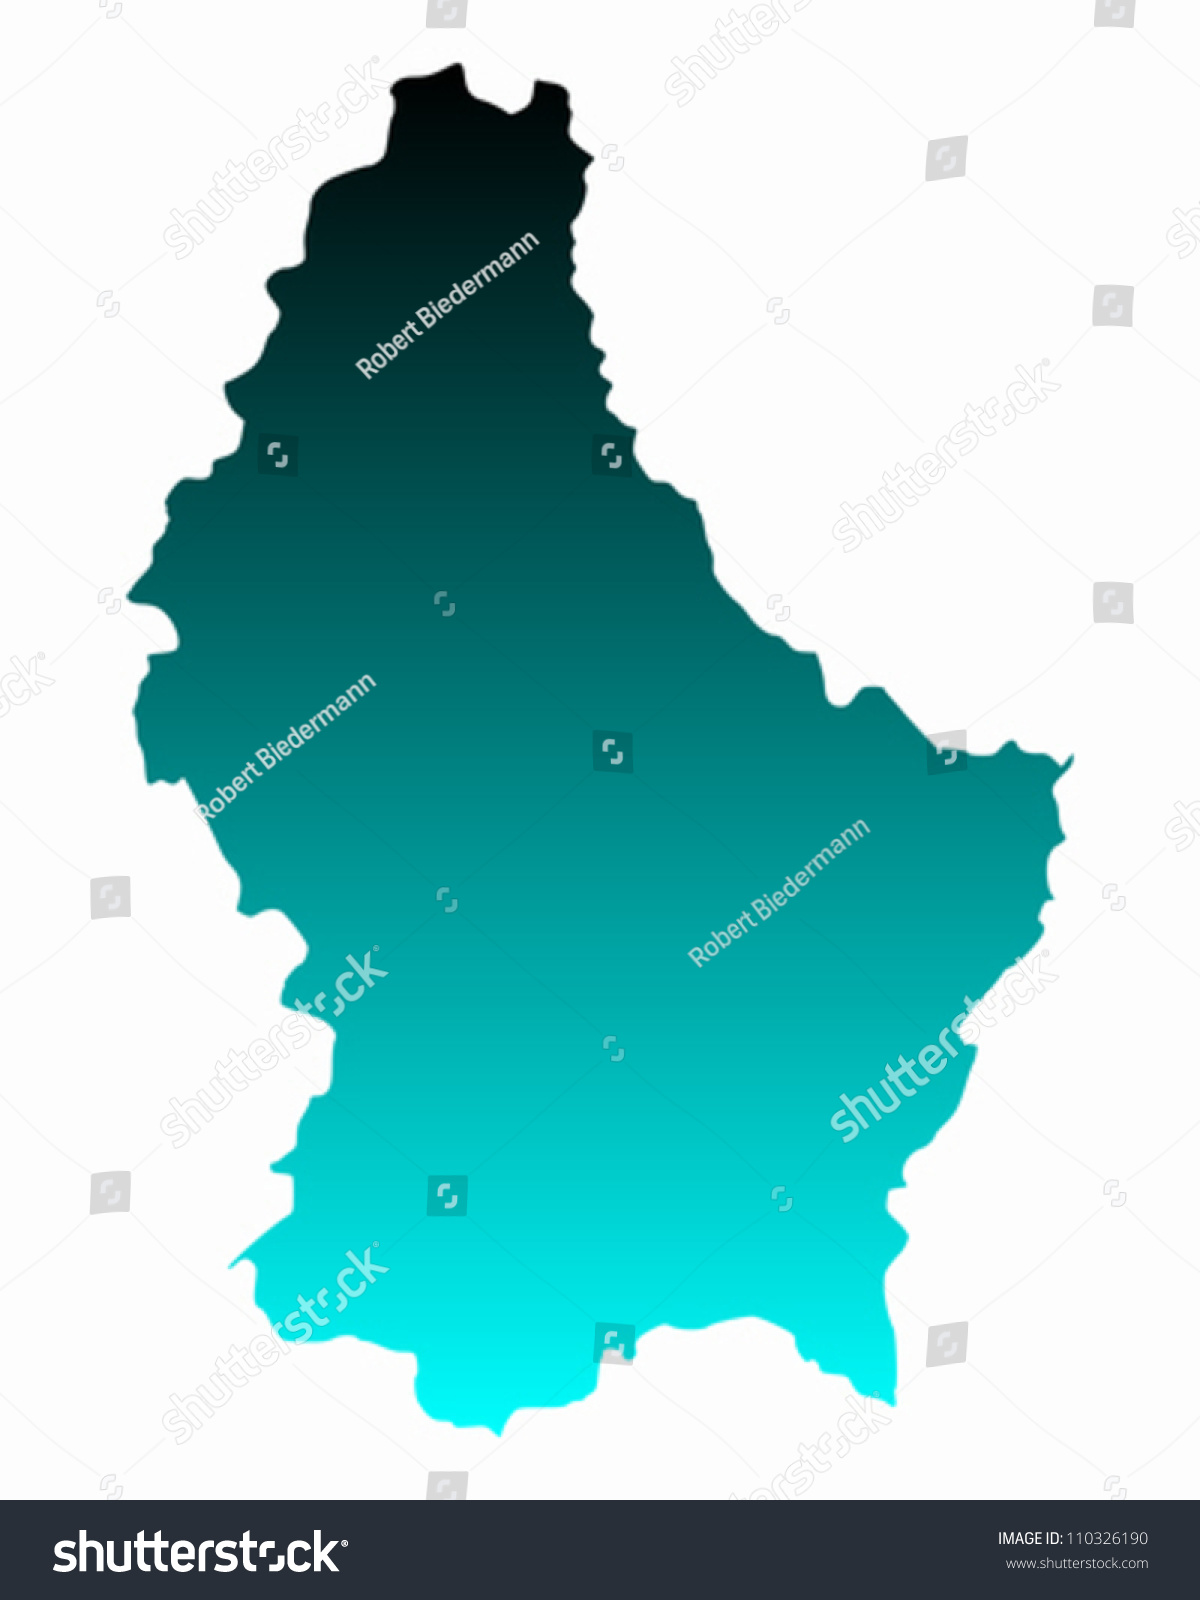 Map Luxembourg Stock Vector Shutterstock - Luxembourg map vector